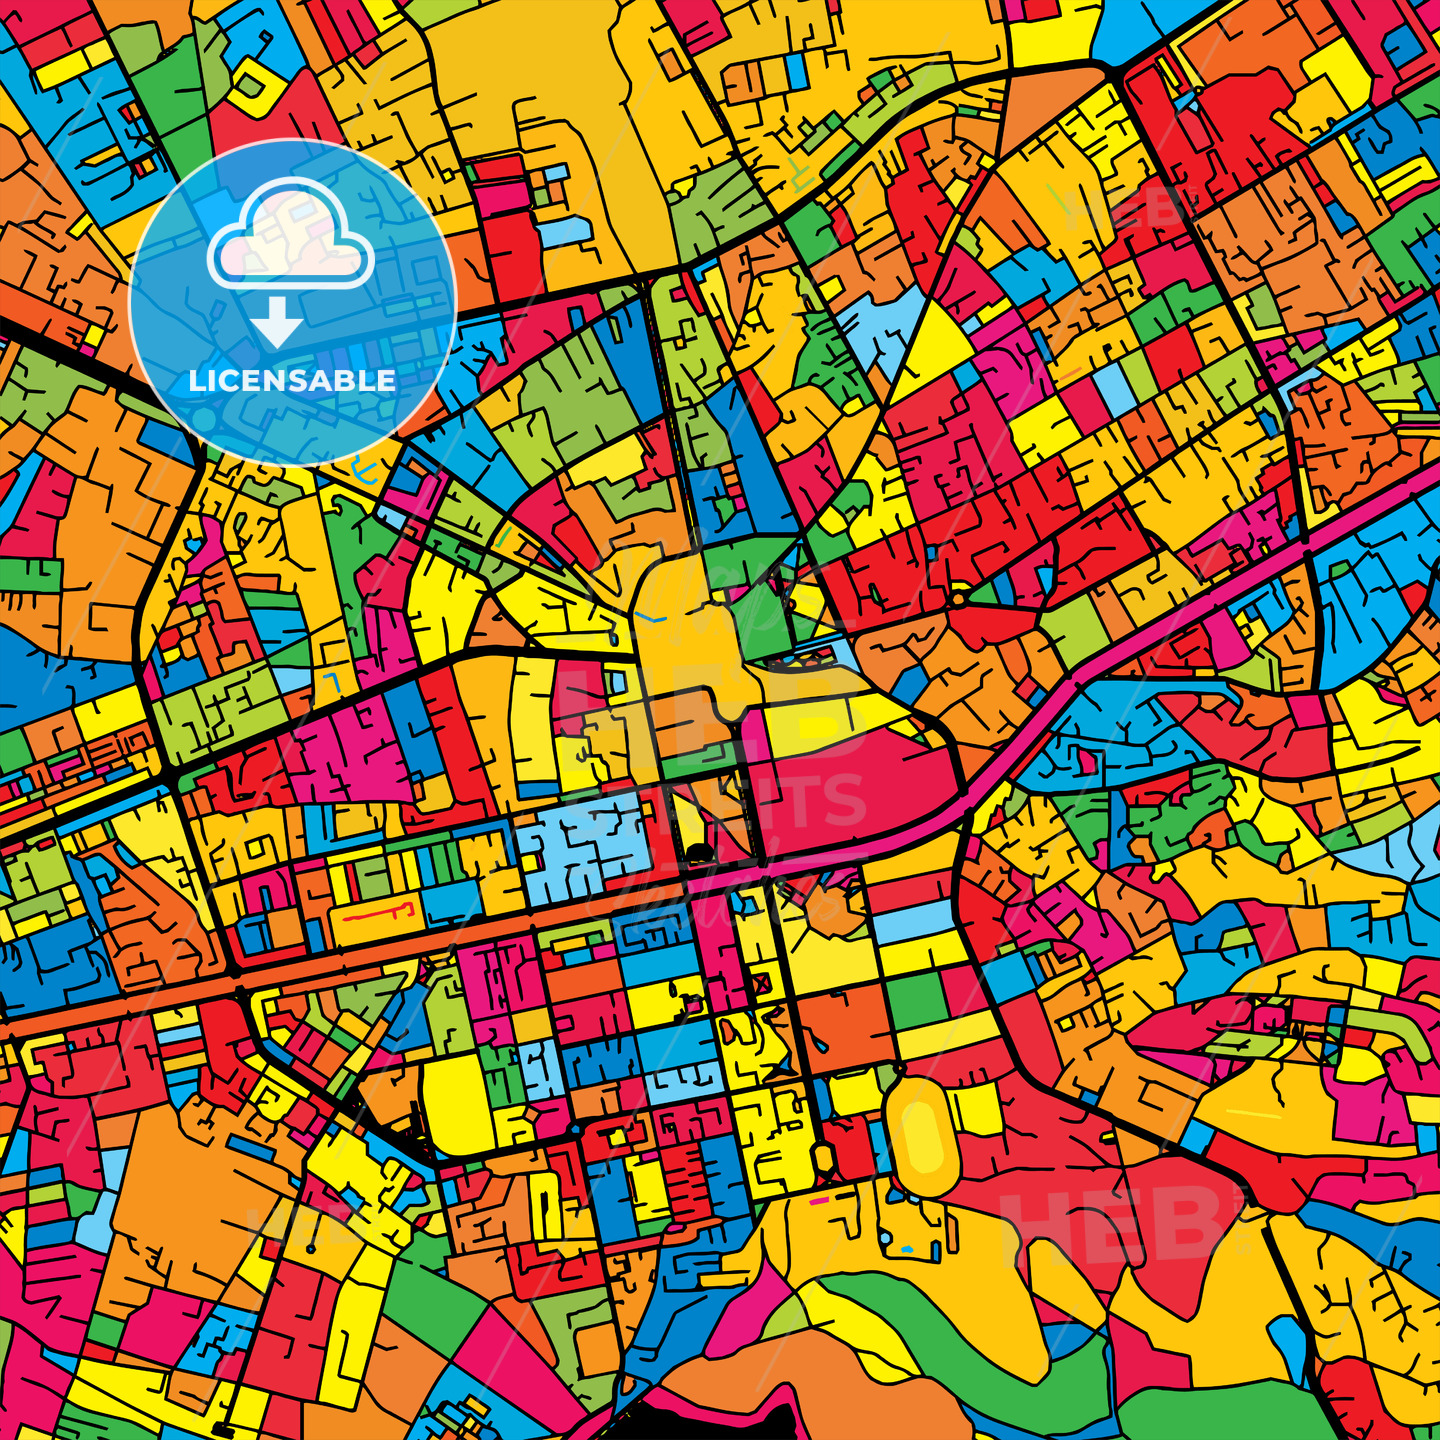 Tirana Albania Colorful Map - HEBSTREIT's Sketches